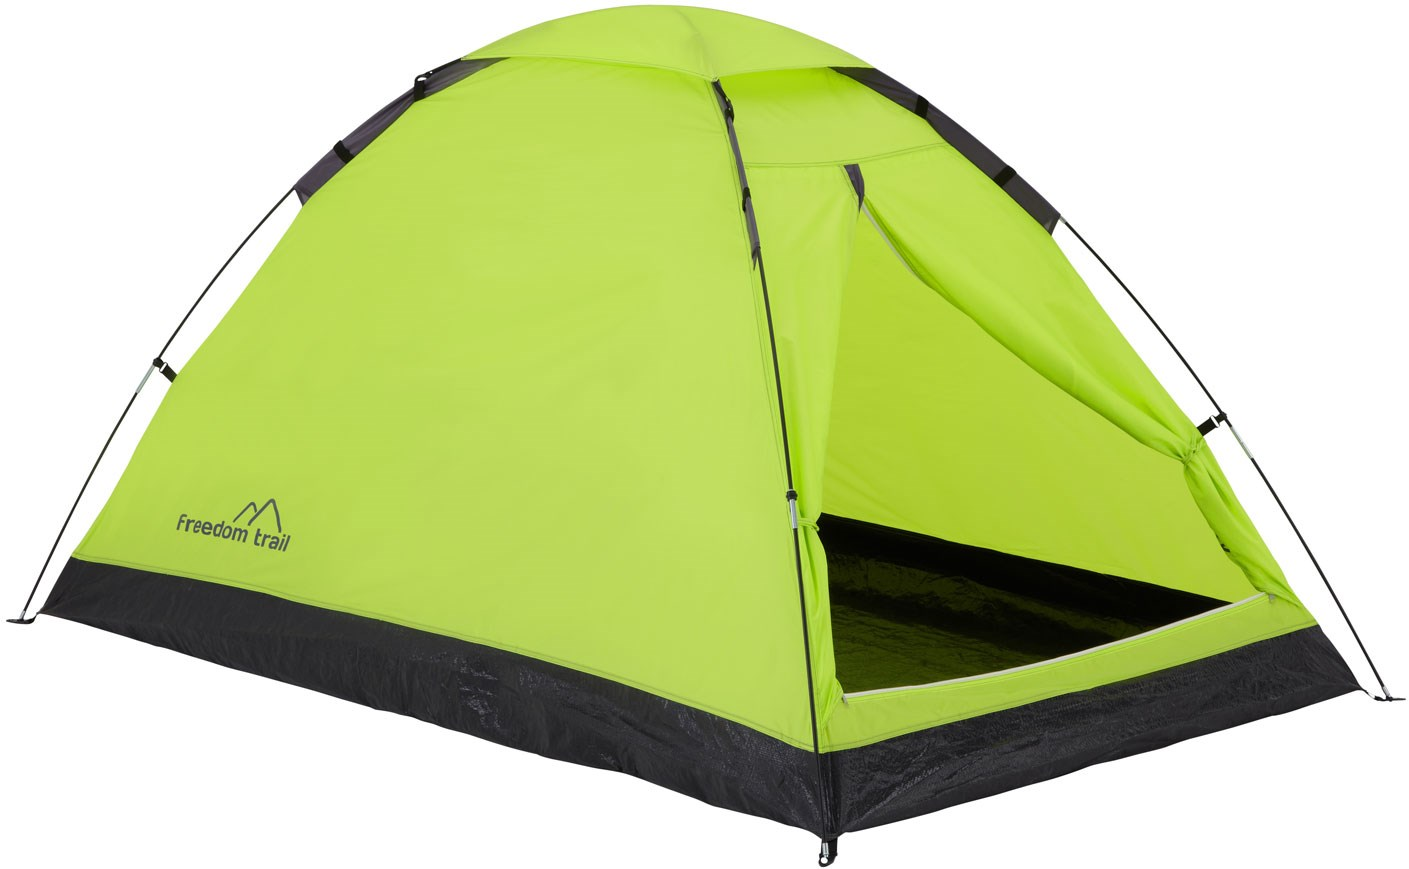 preload  sc 1 st  GO Outdoors & Freedom Trail Toco 2 Tent | GO Outdoors